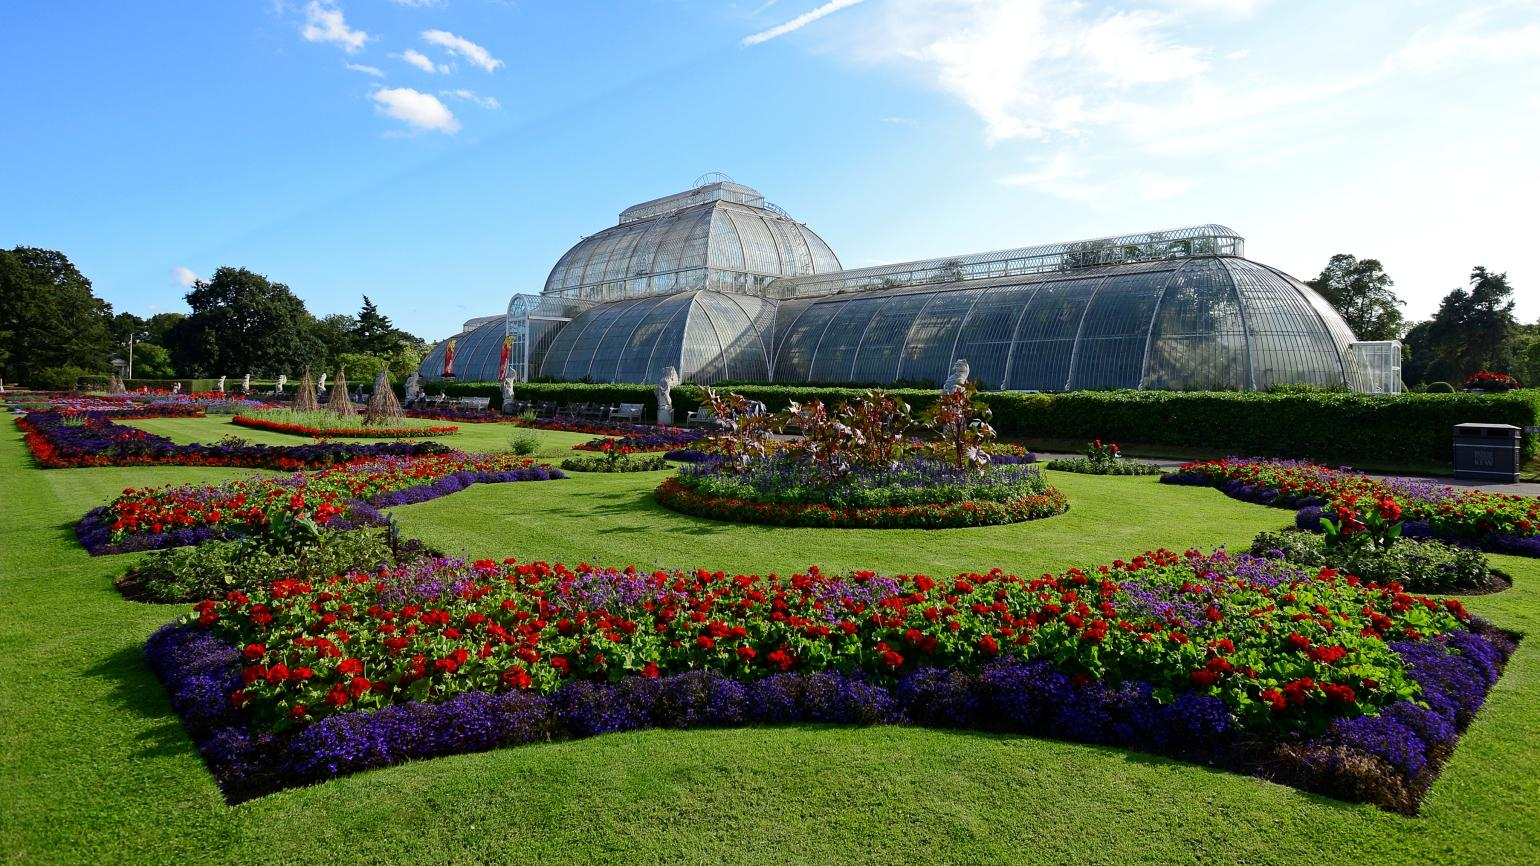 Exterior view of the Palm House in bright sunlight